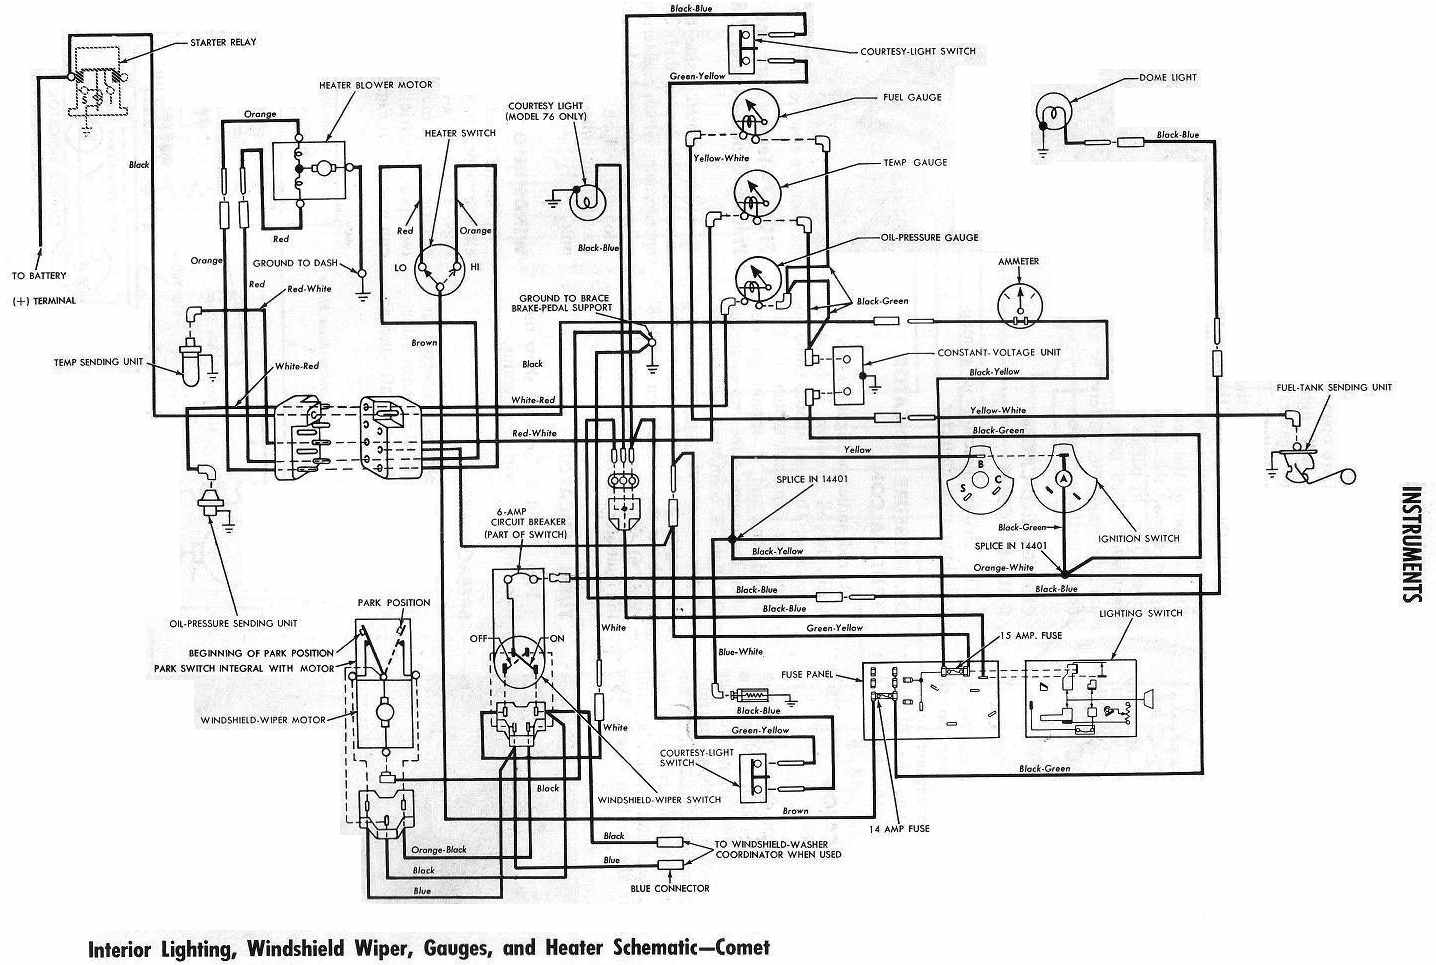 1964 F100 Wiring Diagram on 1961 Lincoln Continental Wiring Diagram